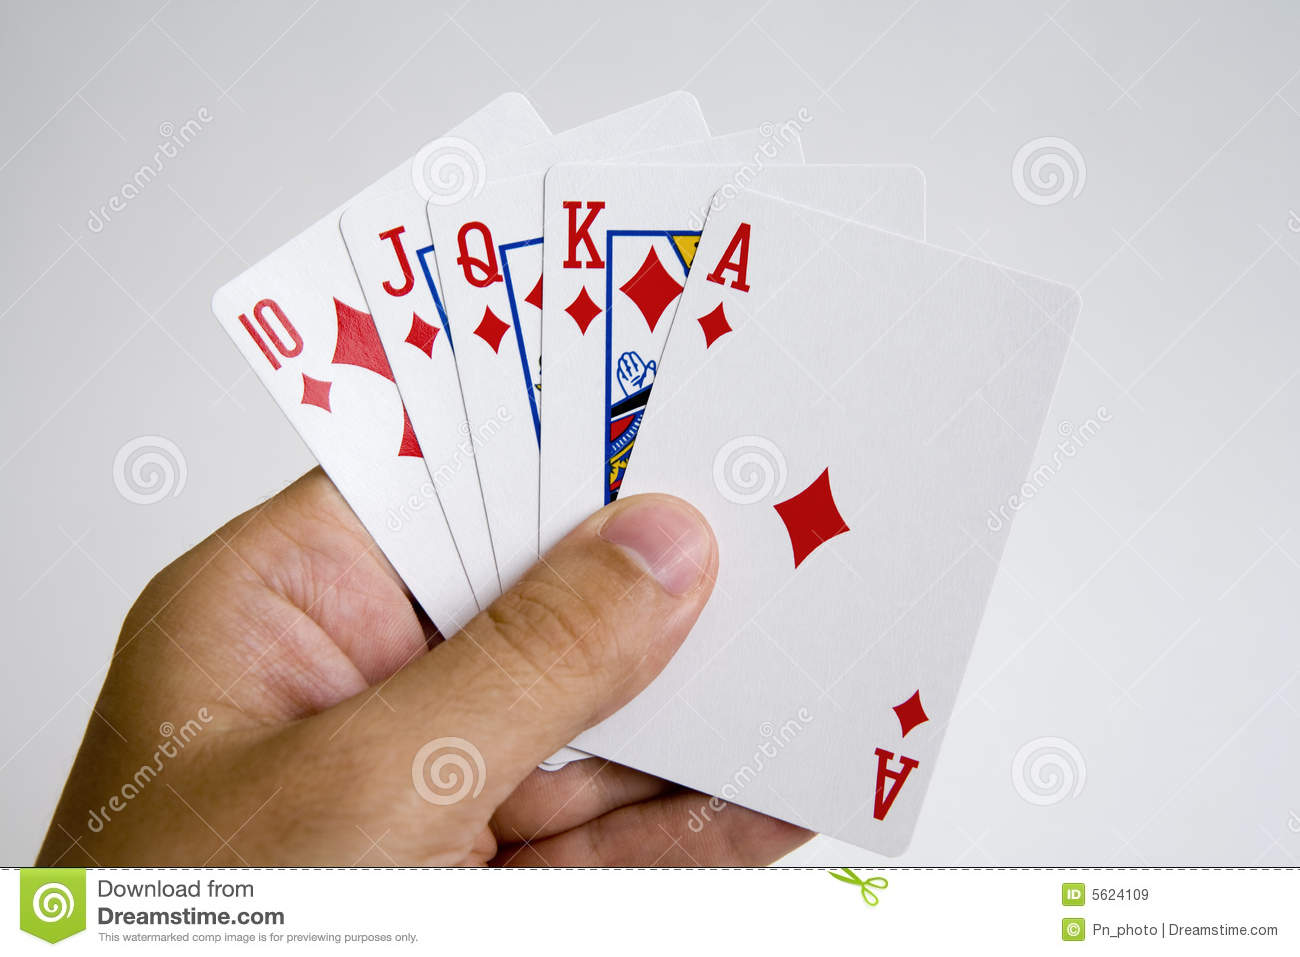 hands texas holdem